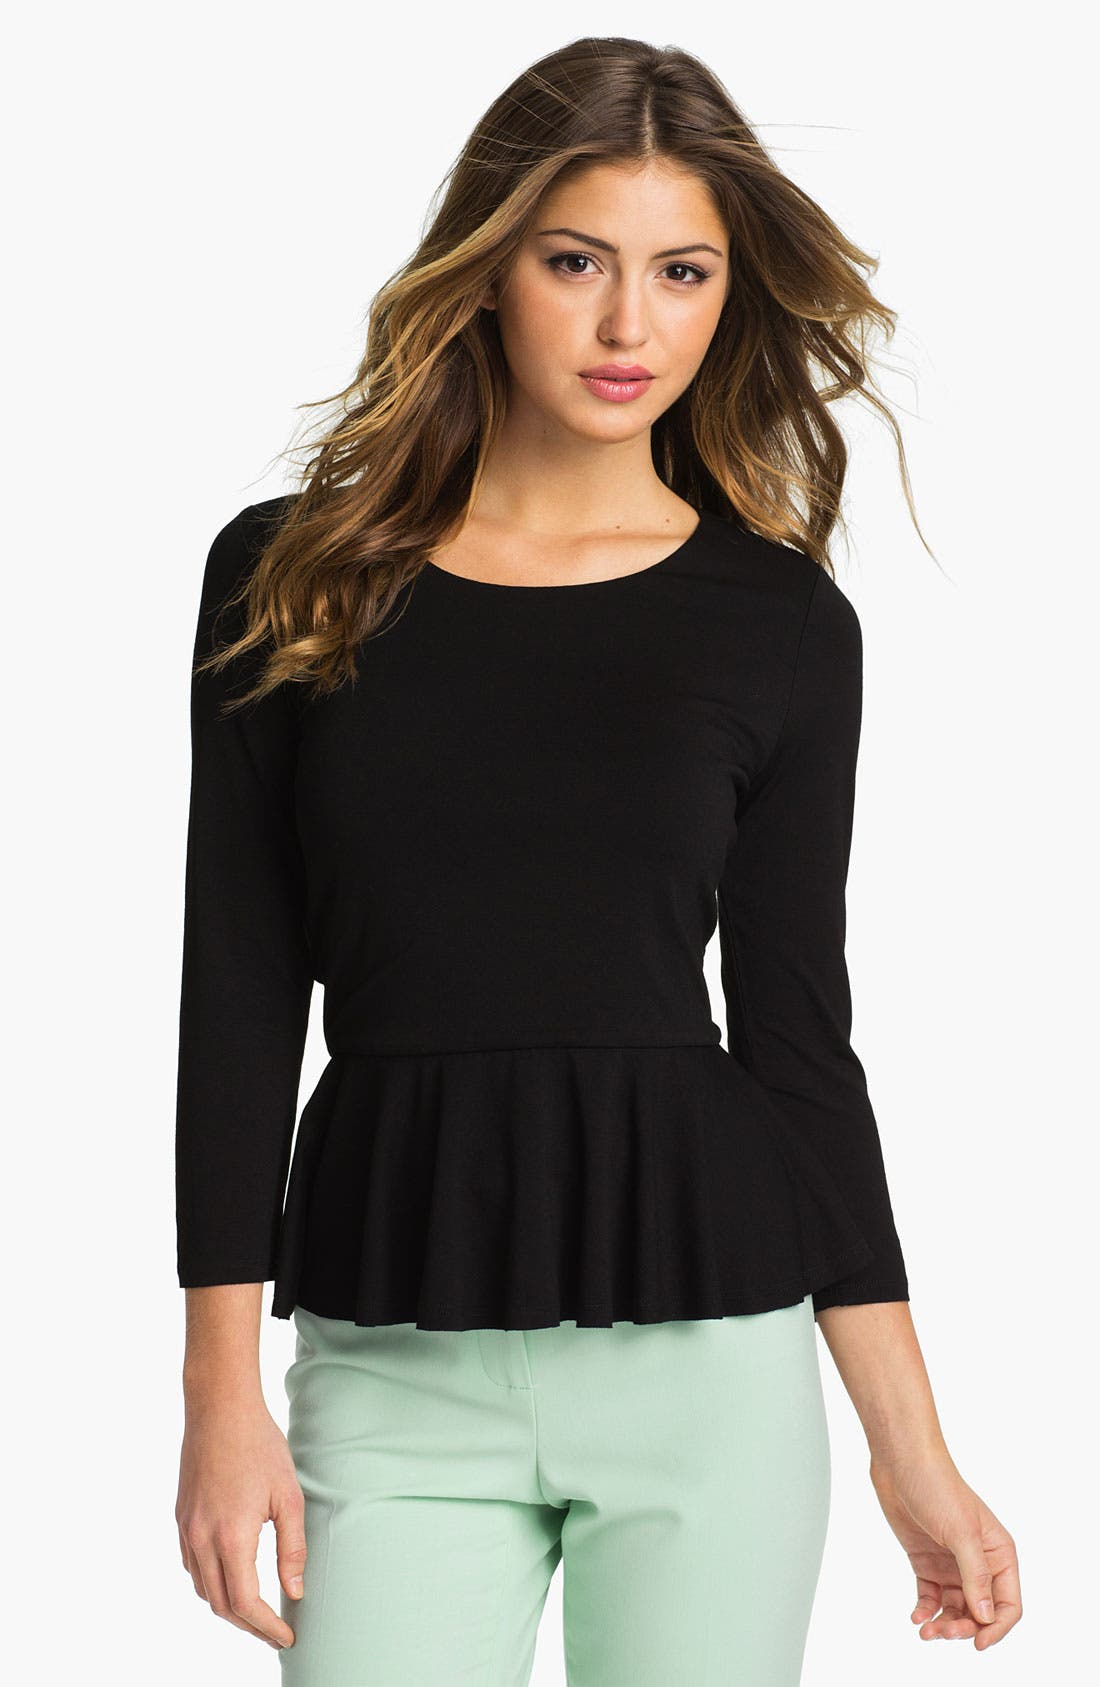 Alternate Image 1 Selected - Vince Camuto Three Quarter Sleeve Peplum Top